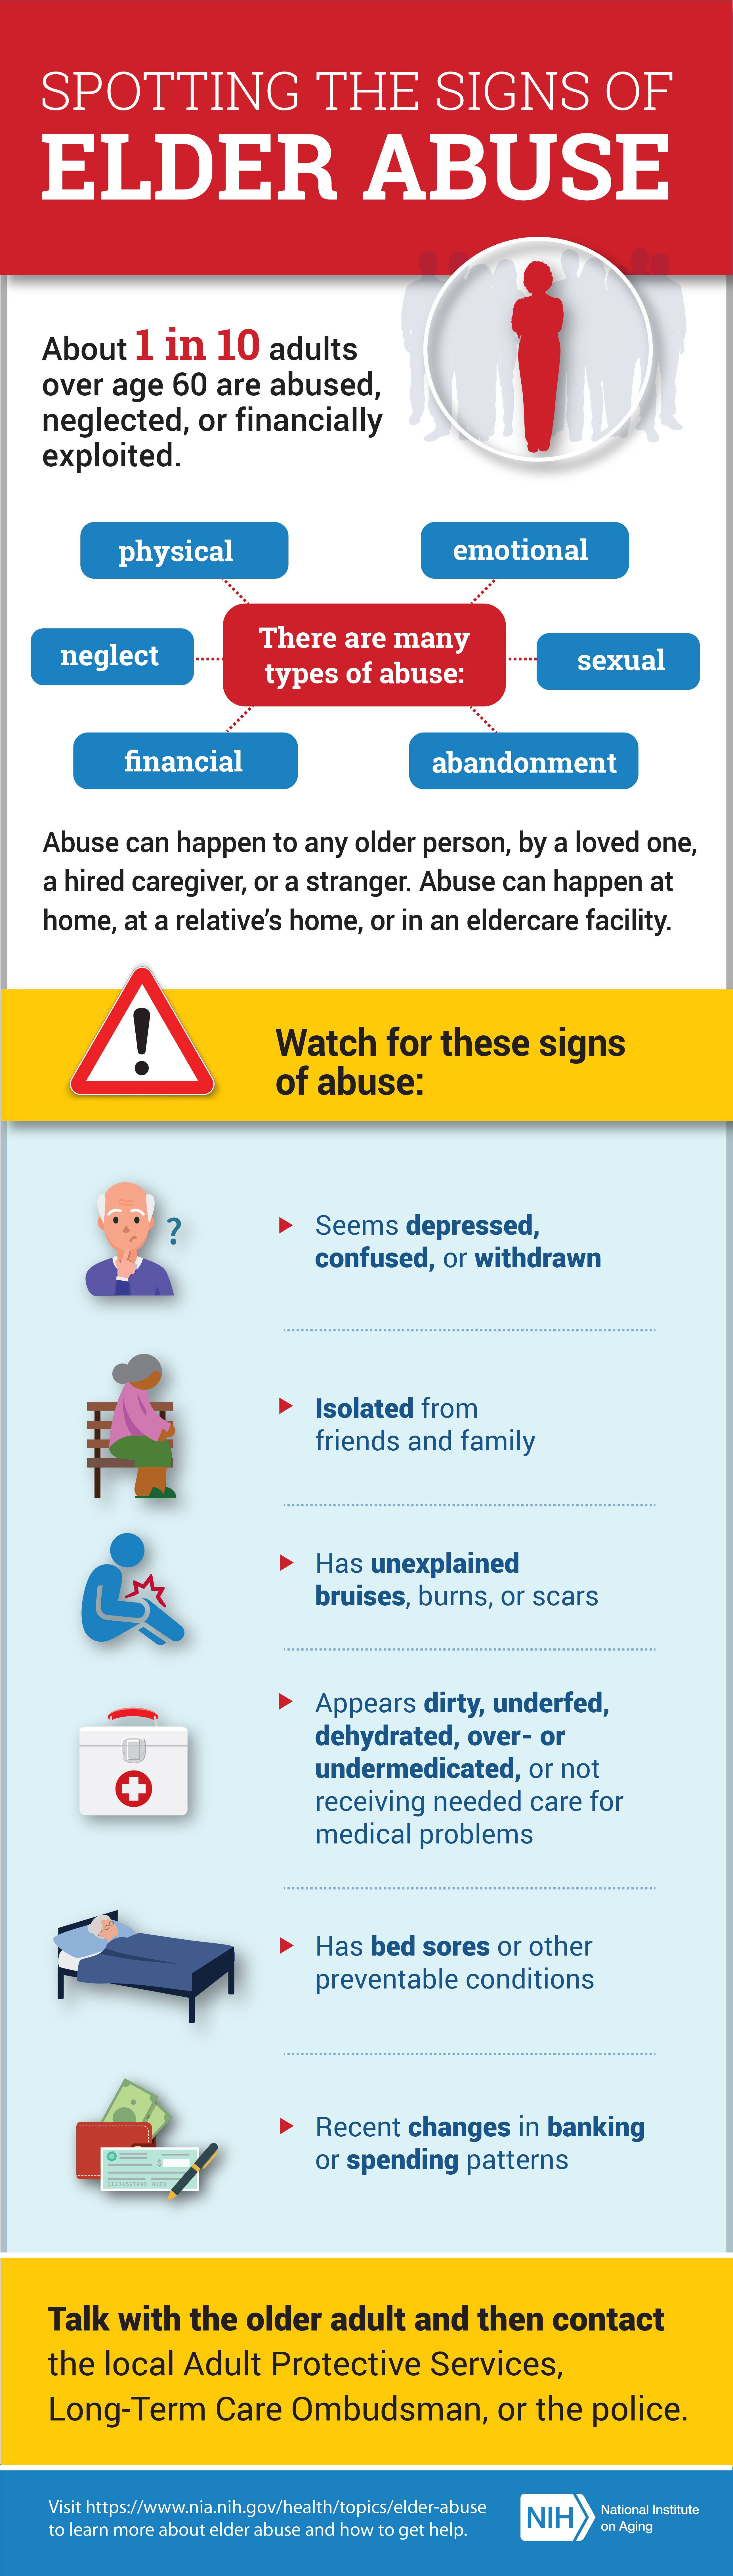 Spotting the signs of elder abuse. 1 in 10 adults 60+ are abused, neglected, or financially exploited. Abuse can be physical, neglect, financial, emotional, sexual, or abandonment. Watch for these signs: seems depressed/withdrawn. Isolation. Has unexplained bruises, burns, scars. Appears dirty, unfed, dehydrated, under/over medicated. Has bed sores. Recent changes in spending money. Talk w/ the older person then contact Adult Protective Services, police, or long term care ombudsman